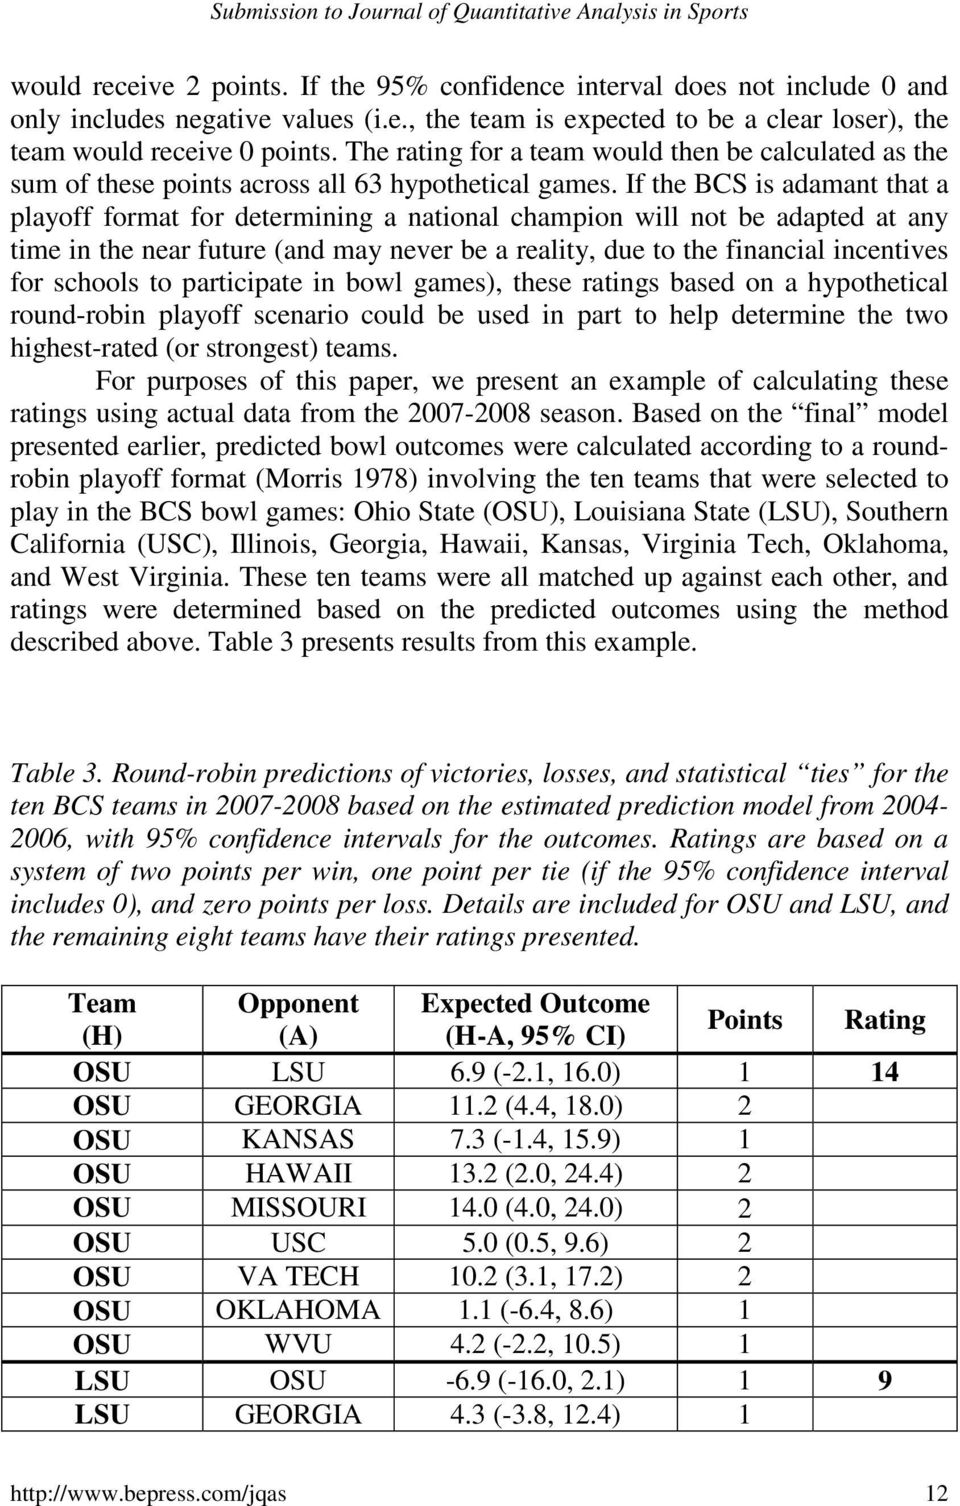 If the BCS is adamant that a playoff format for determining a national champion will not be adapted at any time in the near future (and may never be a reality, due to the financial incentives for